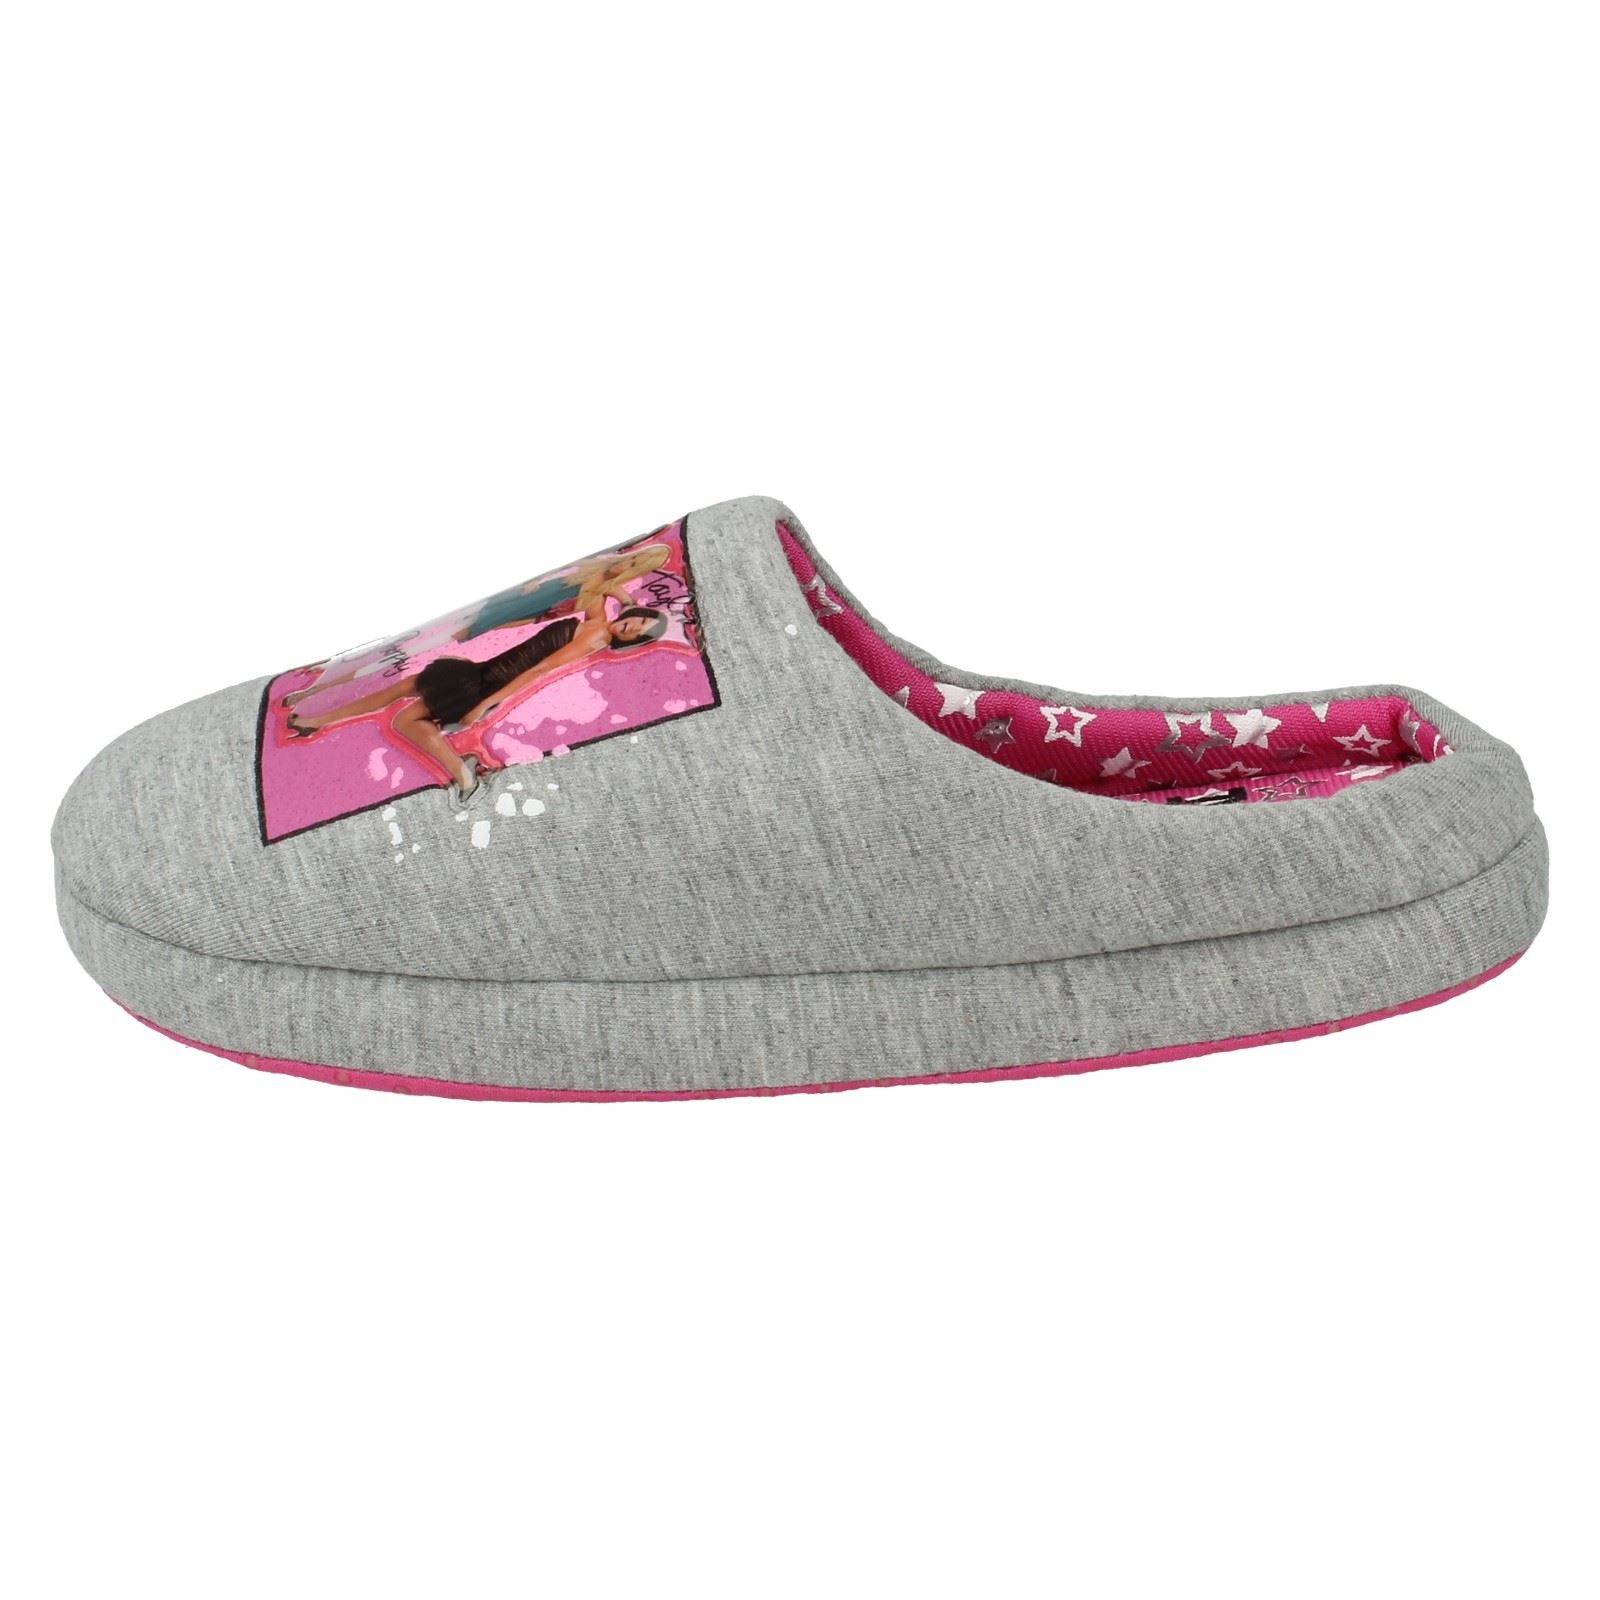 Girls High School Musical Motif Slipper Mule High School Musical